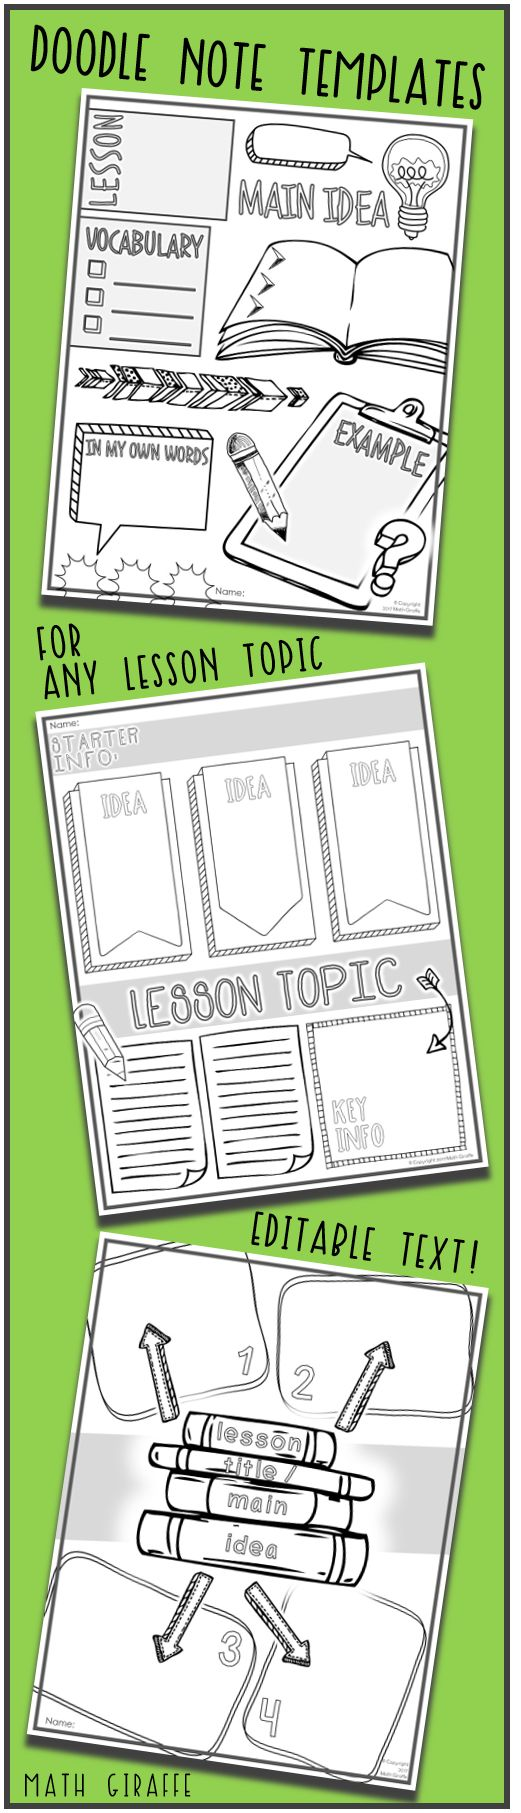 Templates for making interactive doodle notes (any class, any topic / subject, and any grade level) ... Based on brain research -- Doodle notes increase focus, learning, and retention